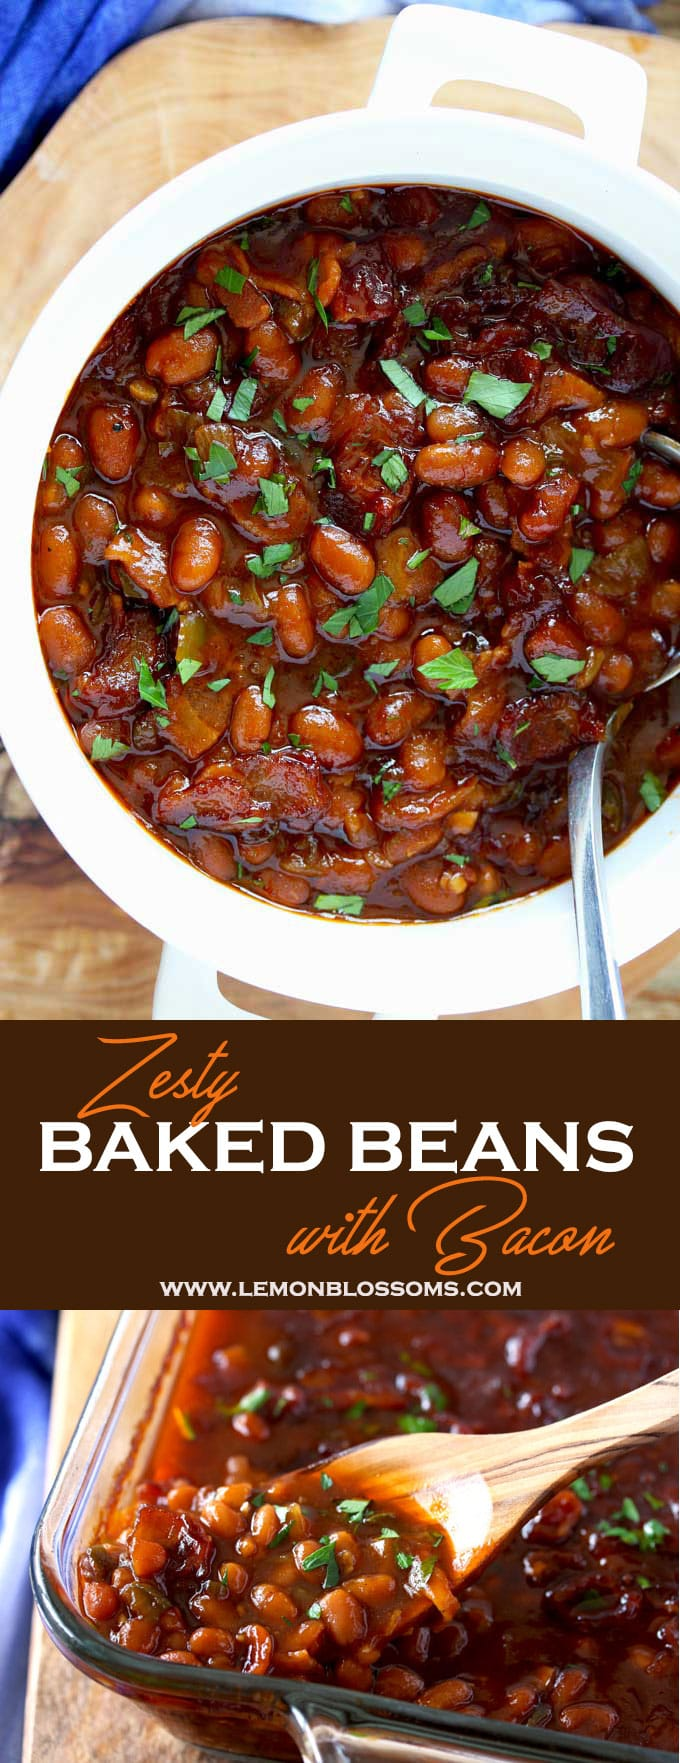 Savory, sweet, thick and hearty, these baked beans with bacon are perfectly seasoned, baked to perfection and with a few shortcuts incredibly easy to make! The perfect side dish for your next dinner, BBQ or gathering!